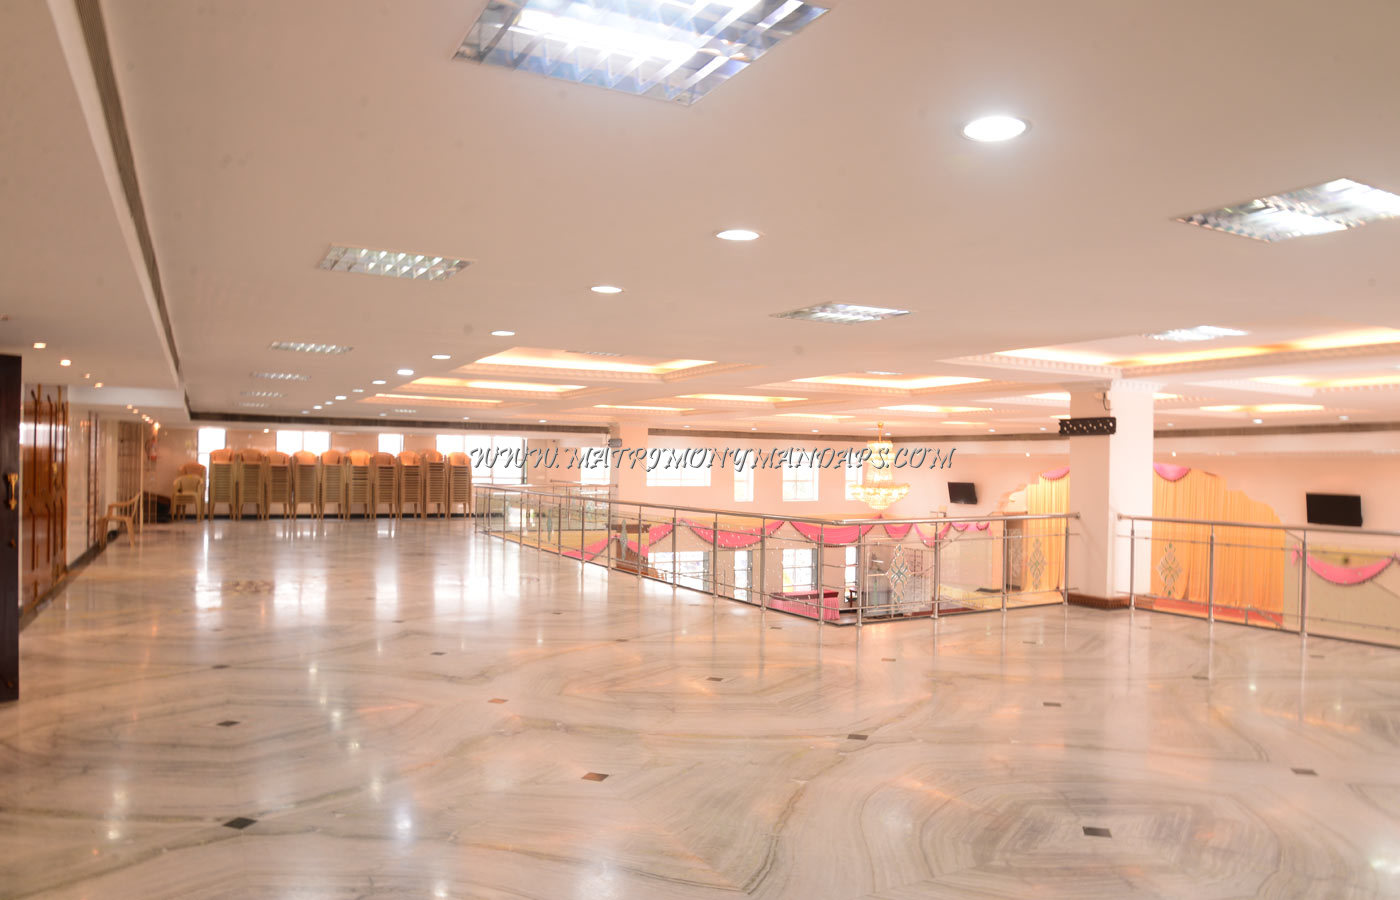 Find the availability of the Sri Lakshmi Prasanna Mahal (A/C) in Poonamallee, Chennai and avail special offers